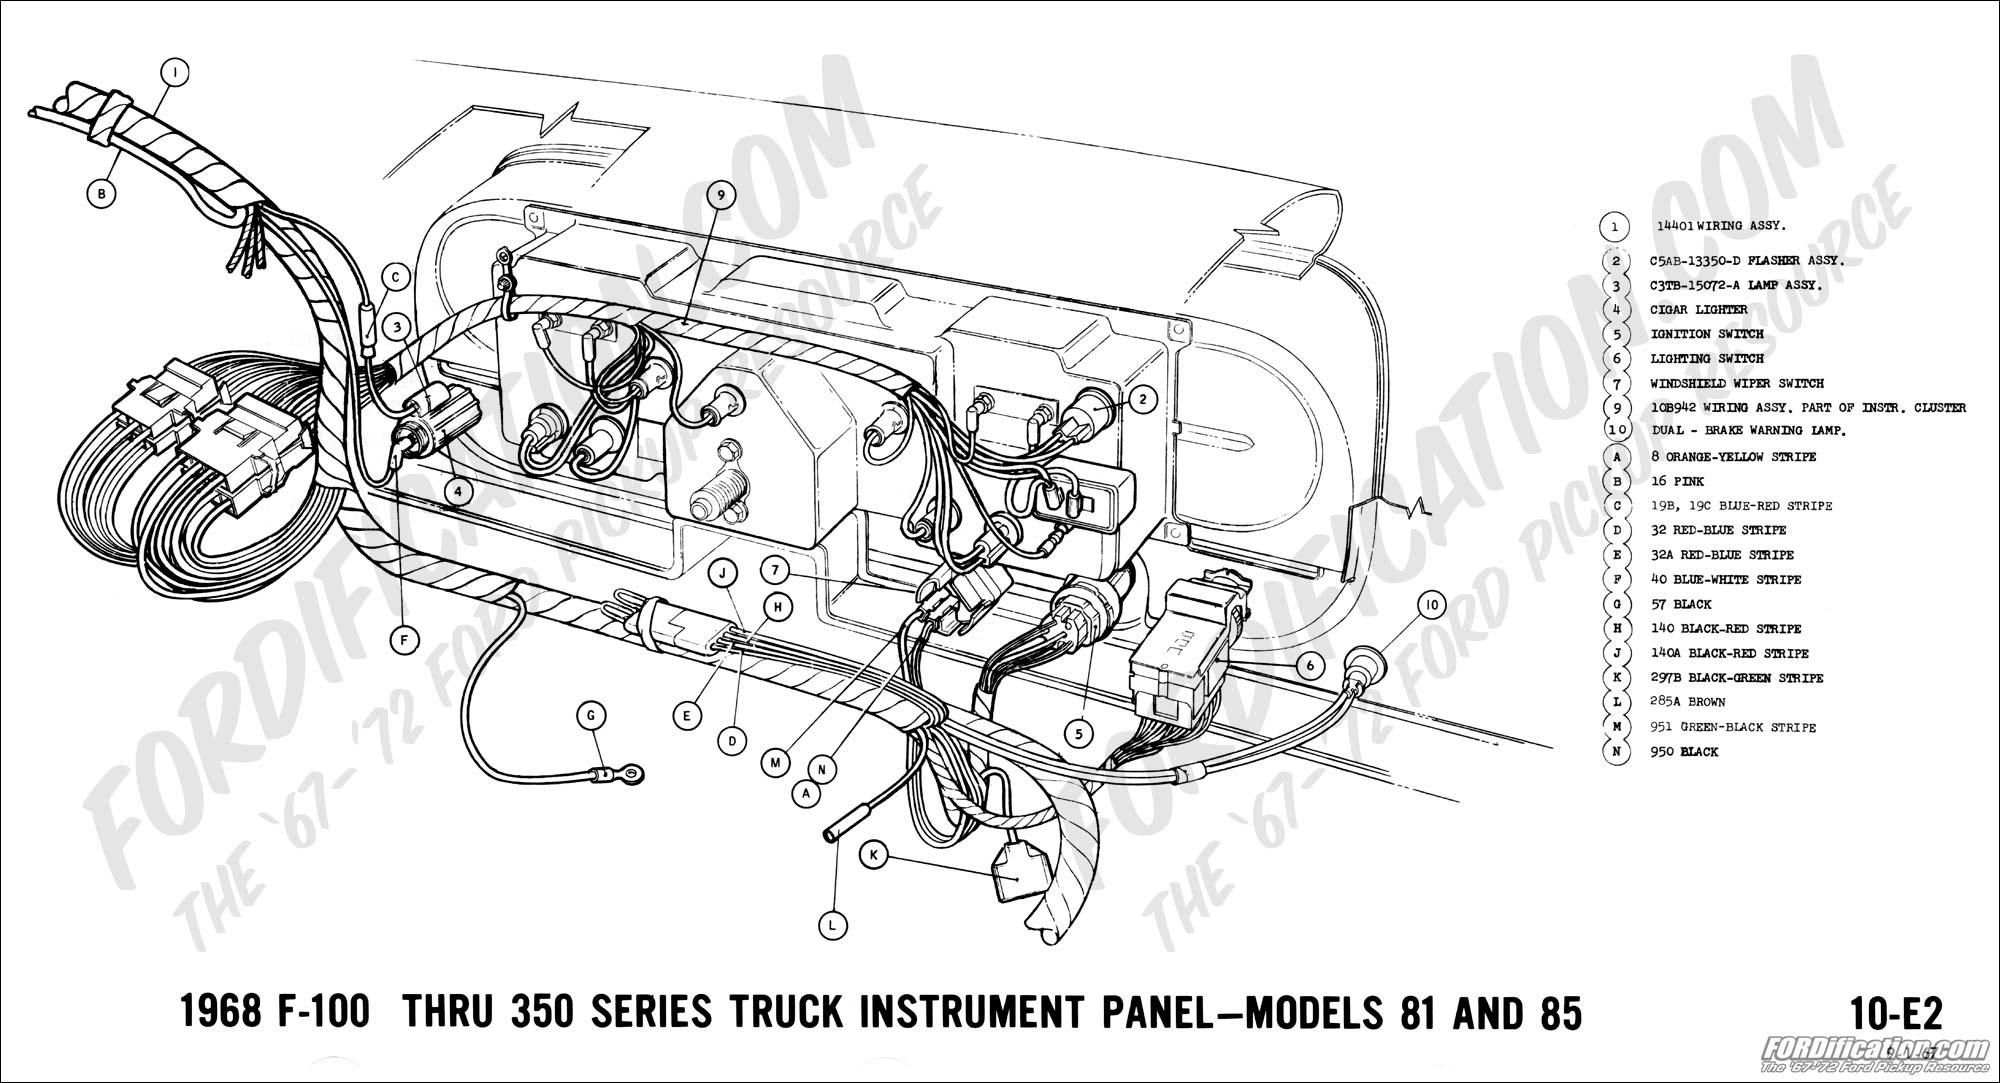 Pleasing 68 Mustang Alternator Wiring Diagram Basic Electronics Wiring Diagram Wiring 101 Capemaxxcnl